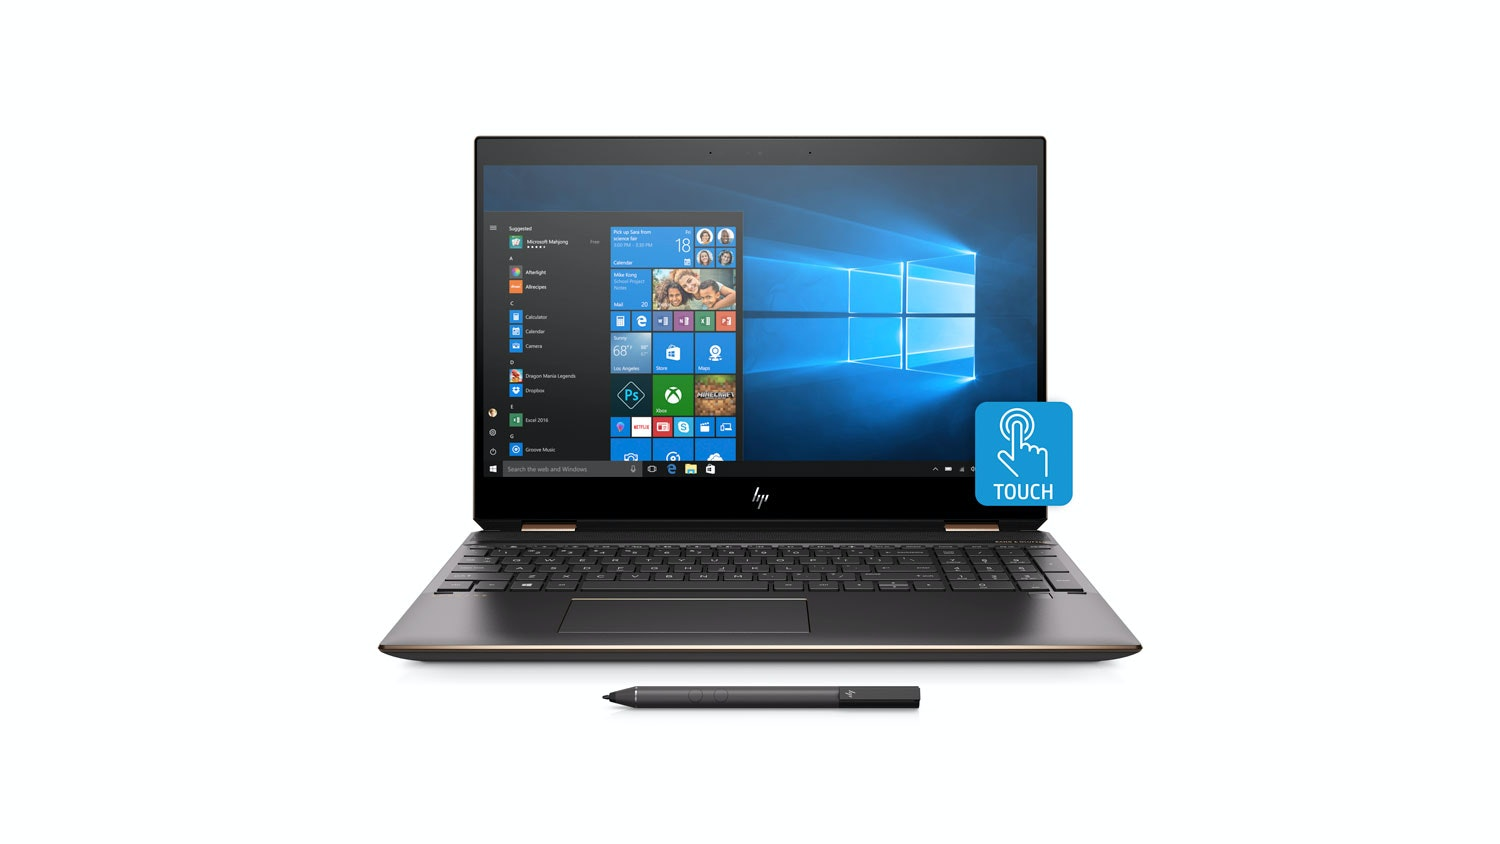 HP Spectre x360 15-DF0013TX 2-in-1 Laptop